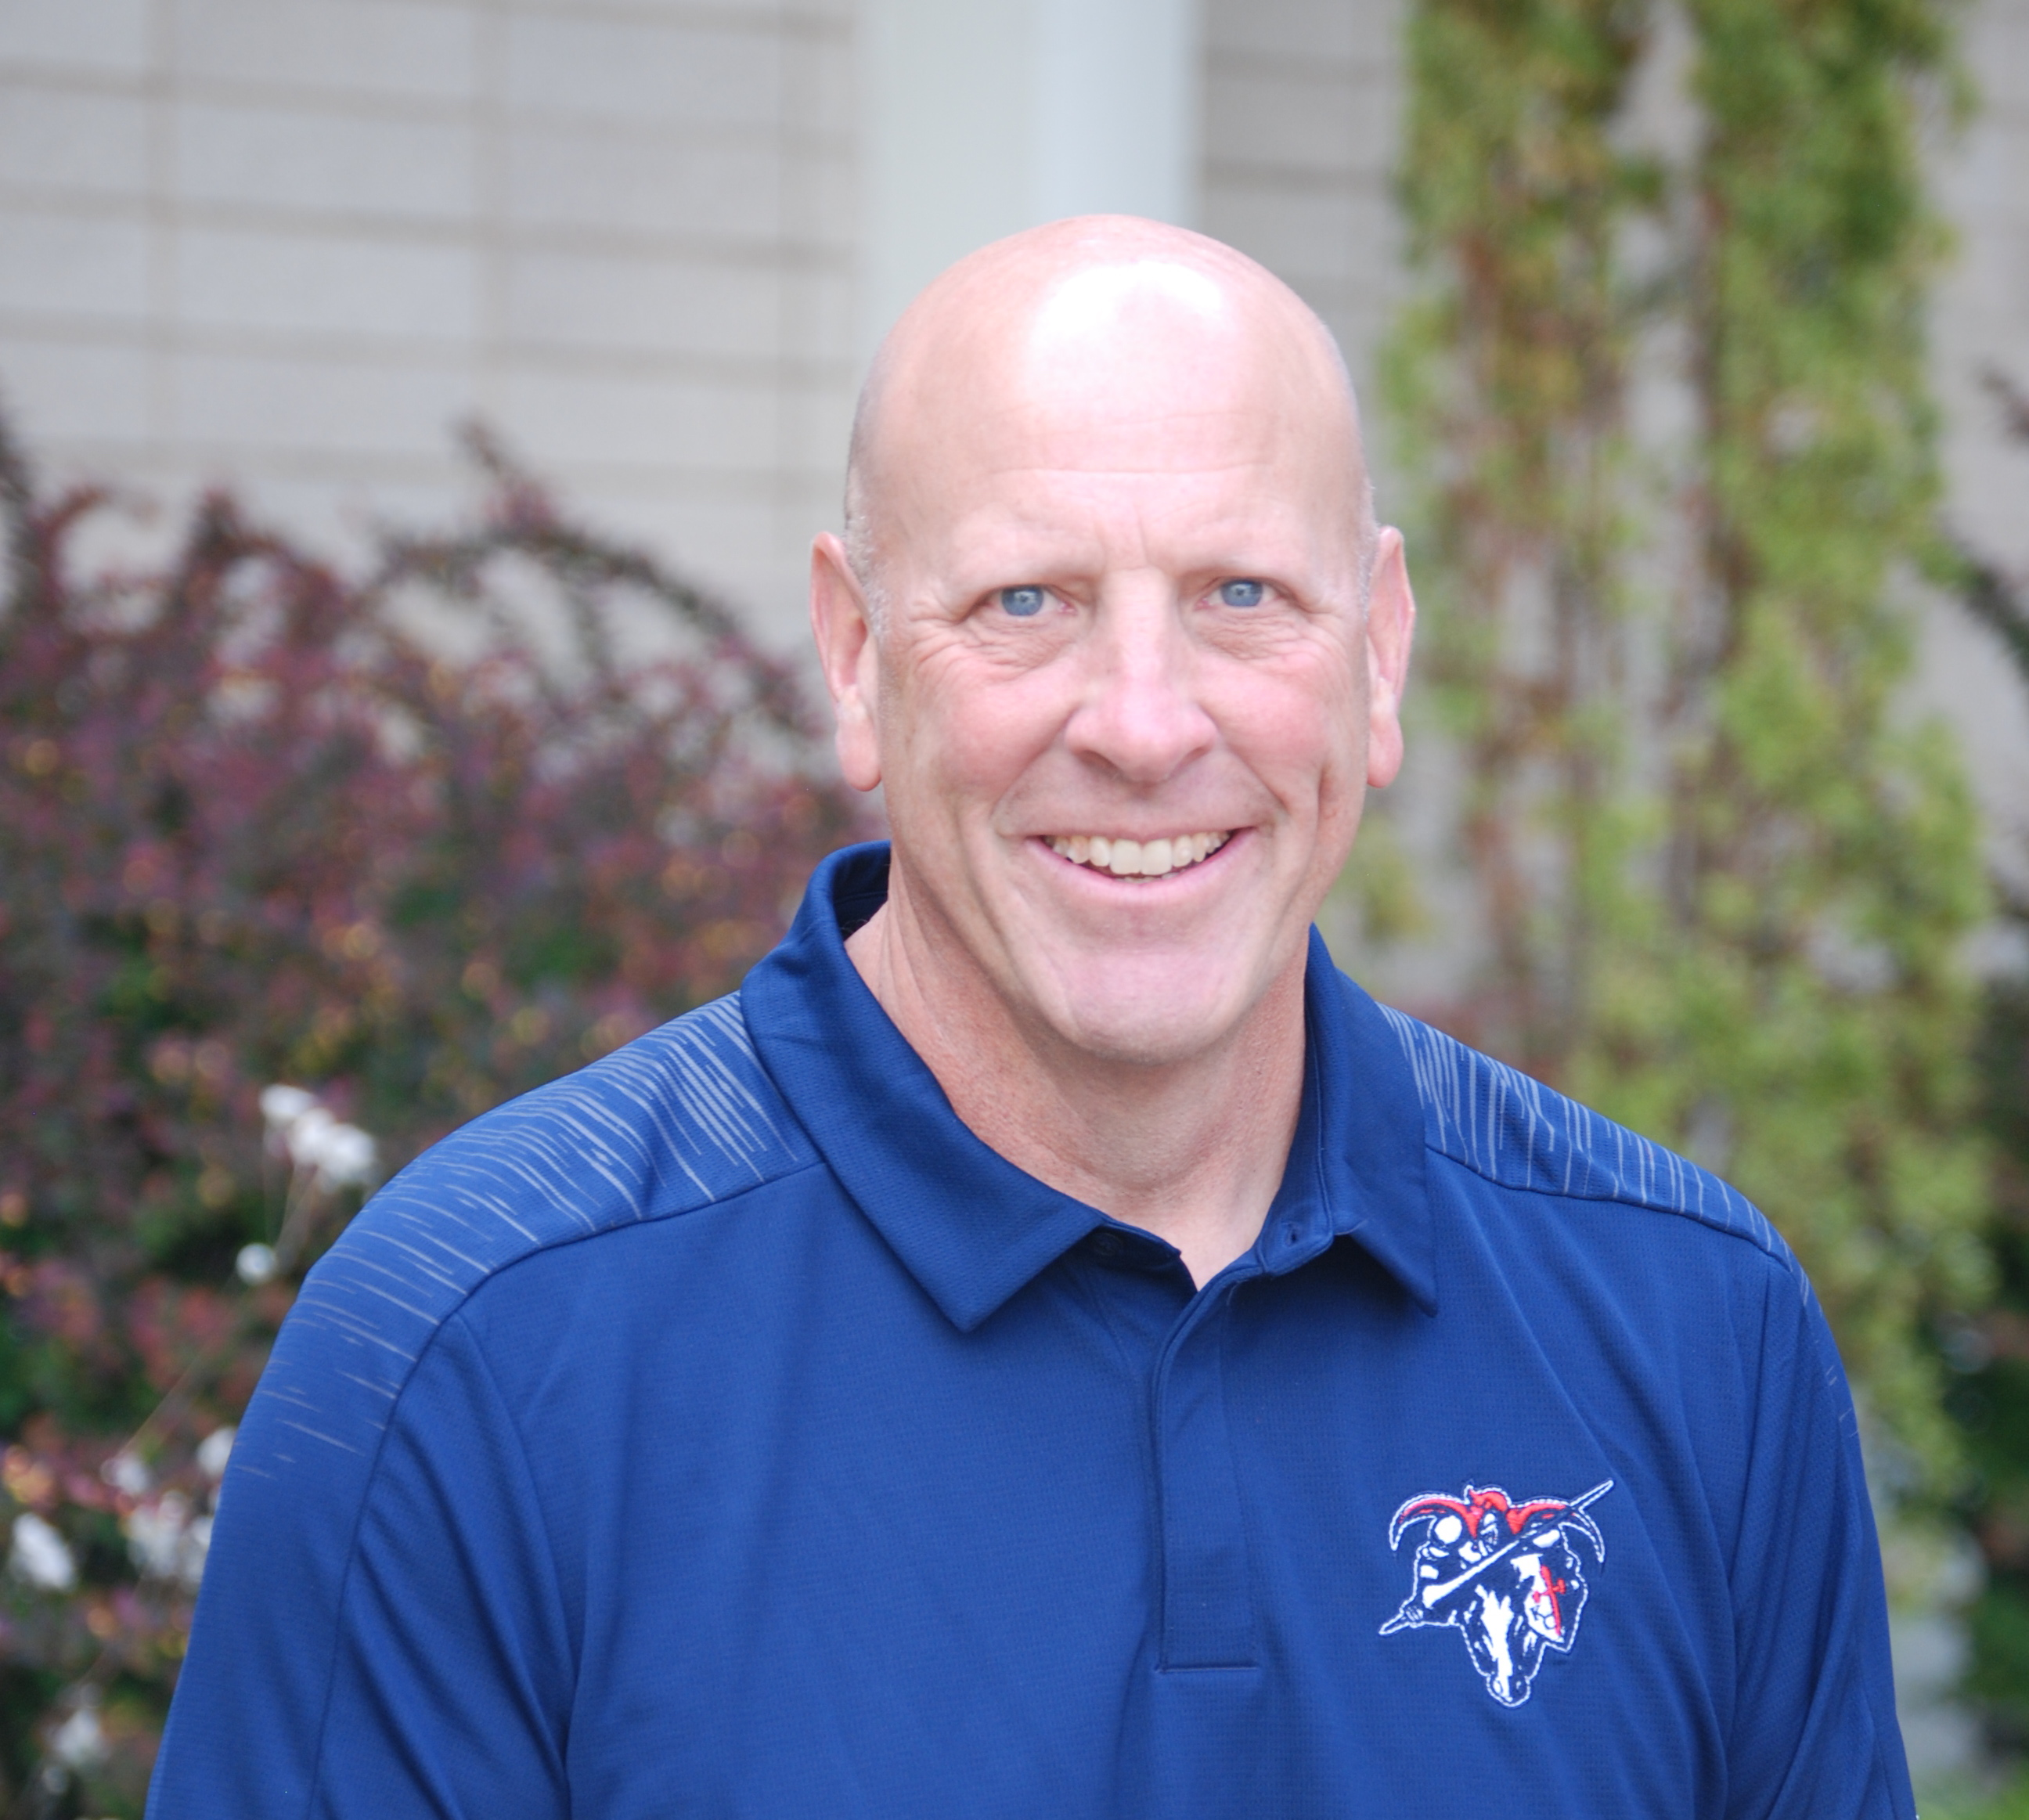 Meet Don Hoffman, Athletic Director